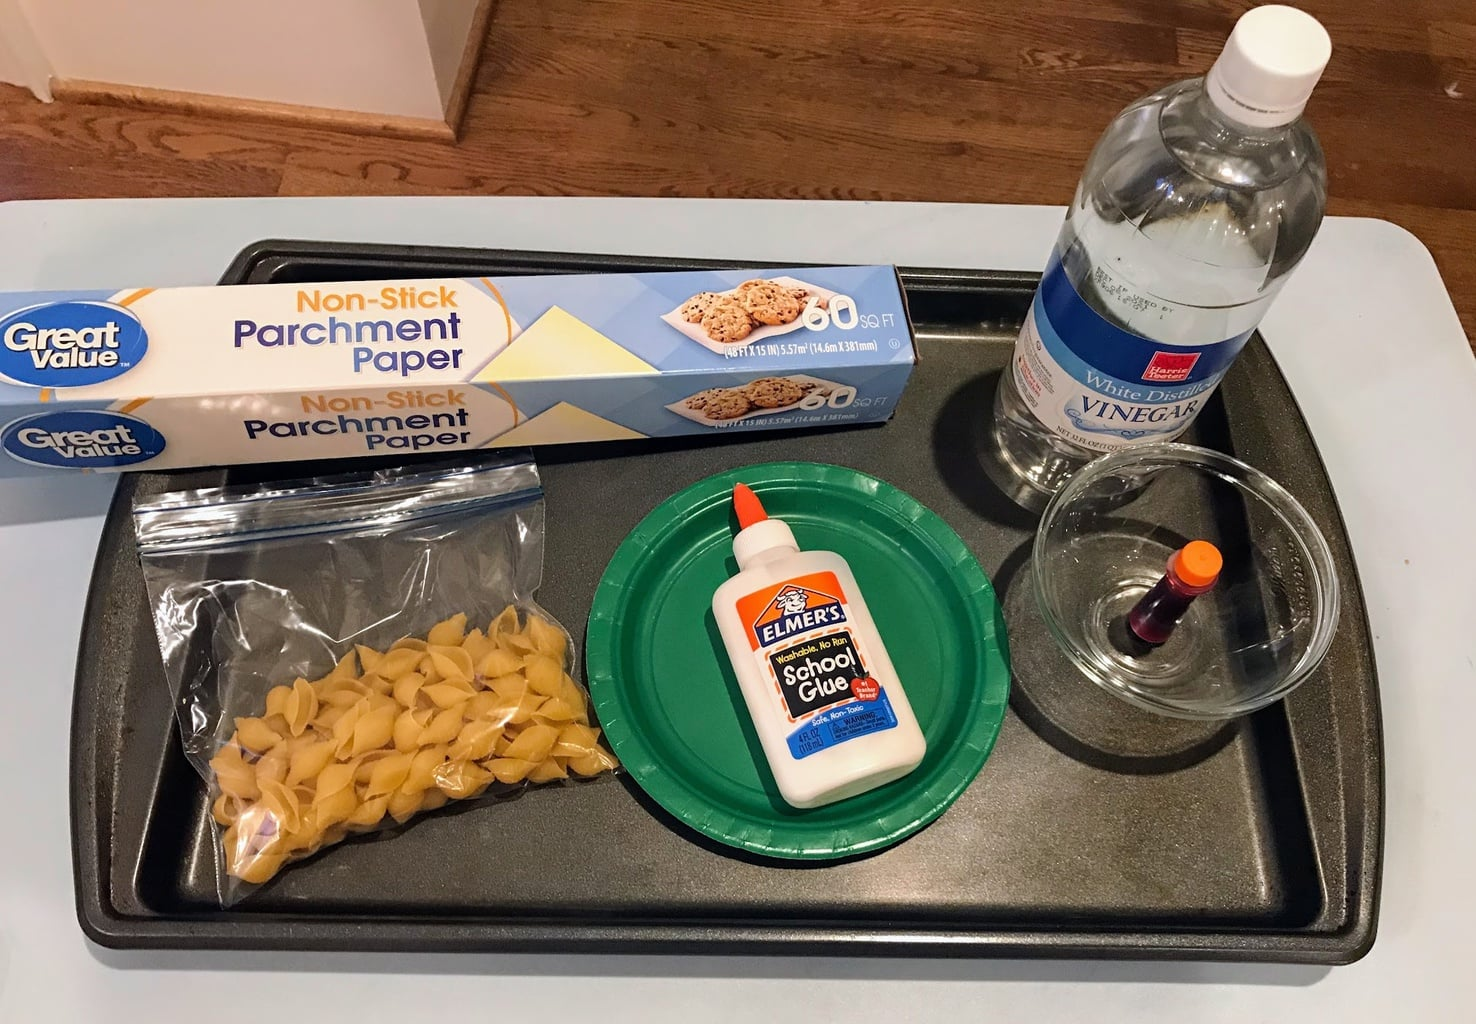 supplies playfood mac and cheese